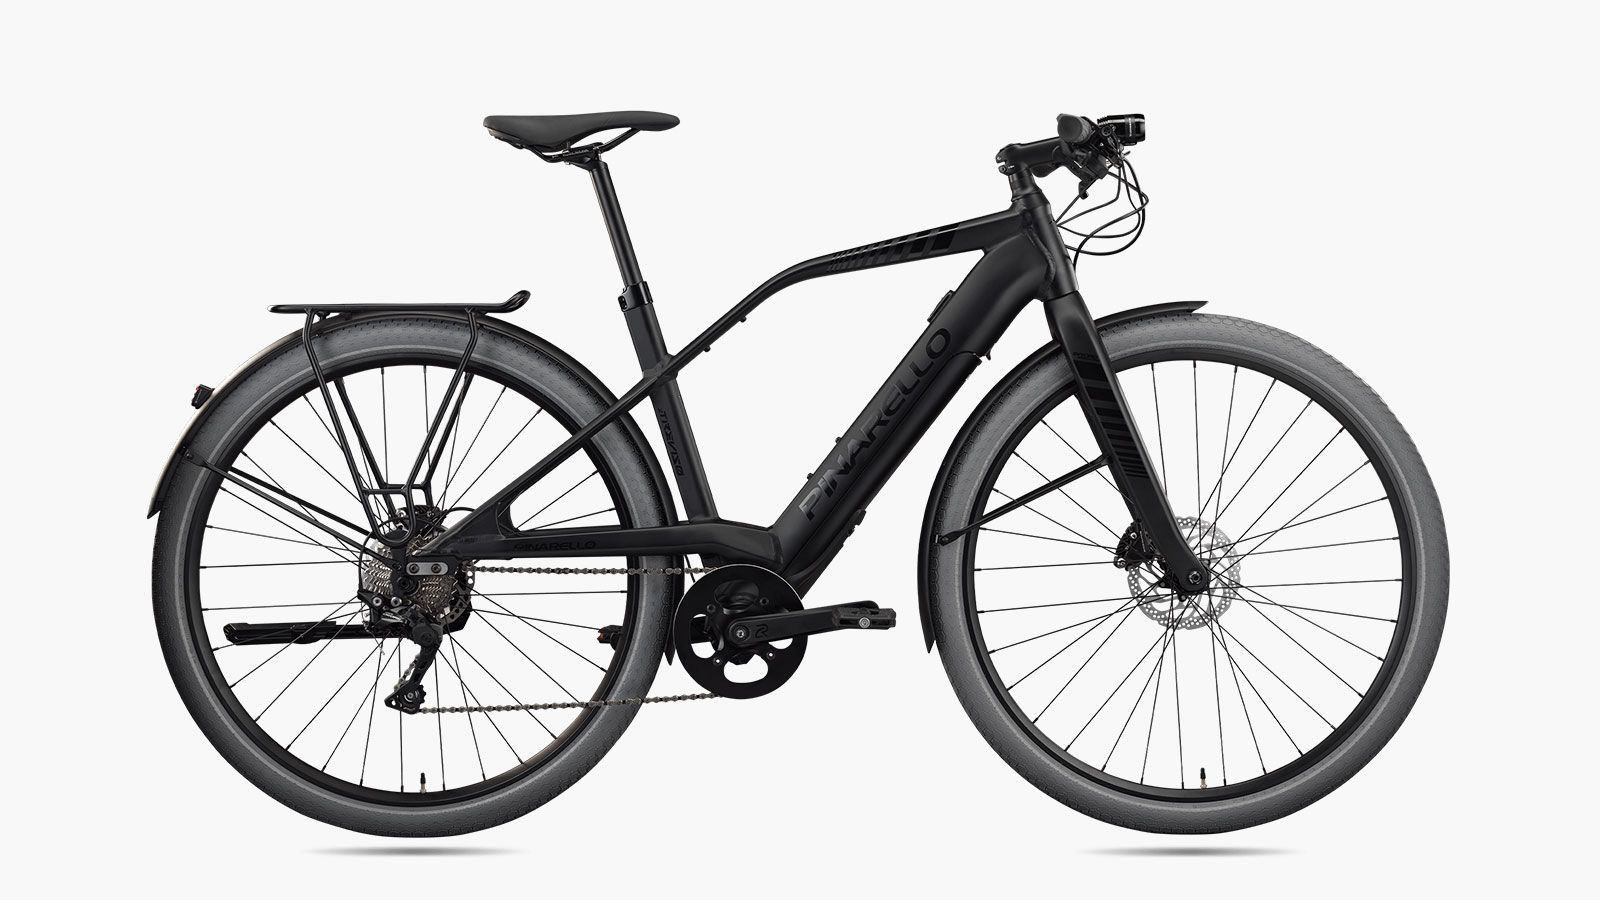 2021 Pinarello eTreviso Urban e-bike